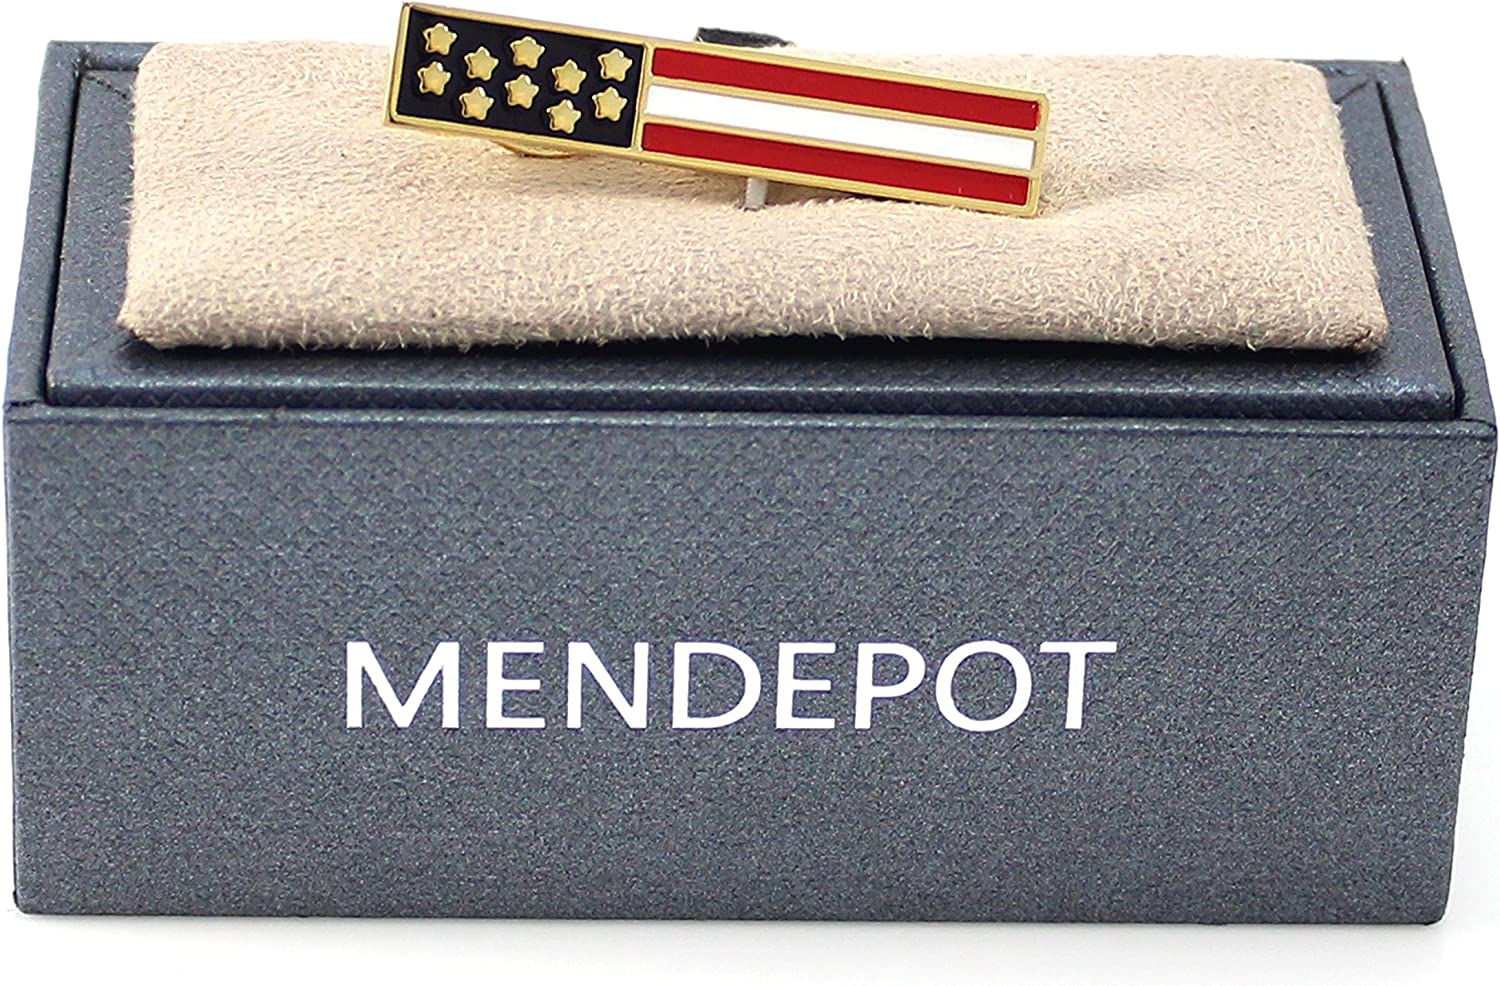 MENDEPOT American Flag Tie Clip Gold Plated USA Flag Tie Clip In Box